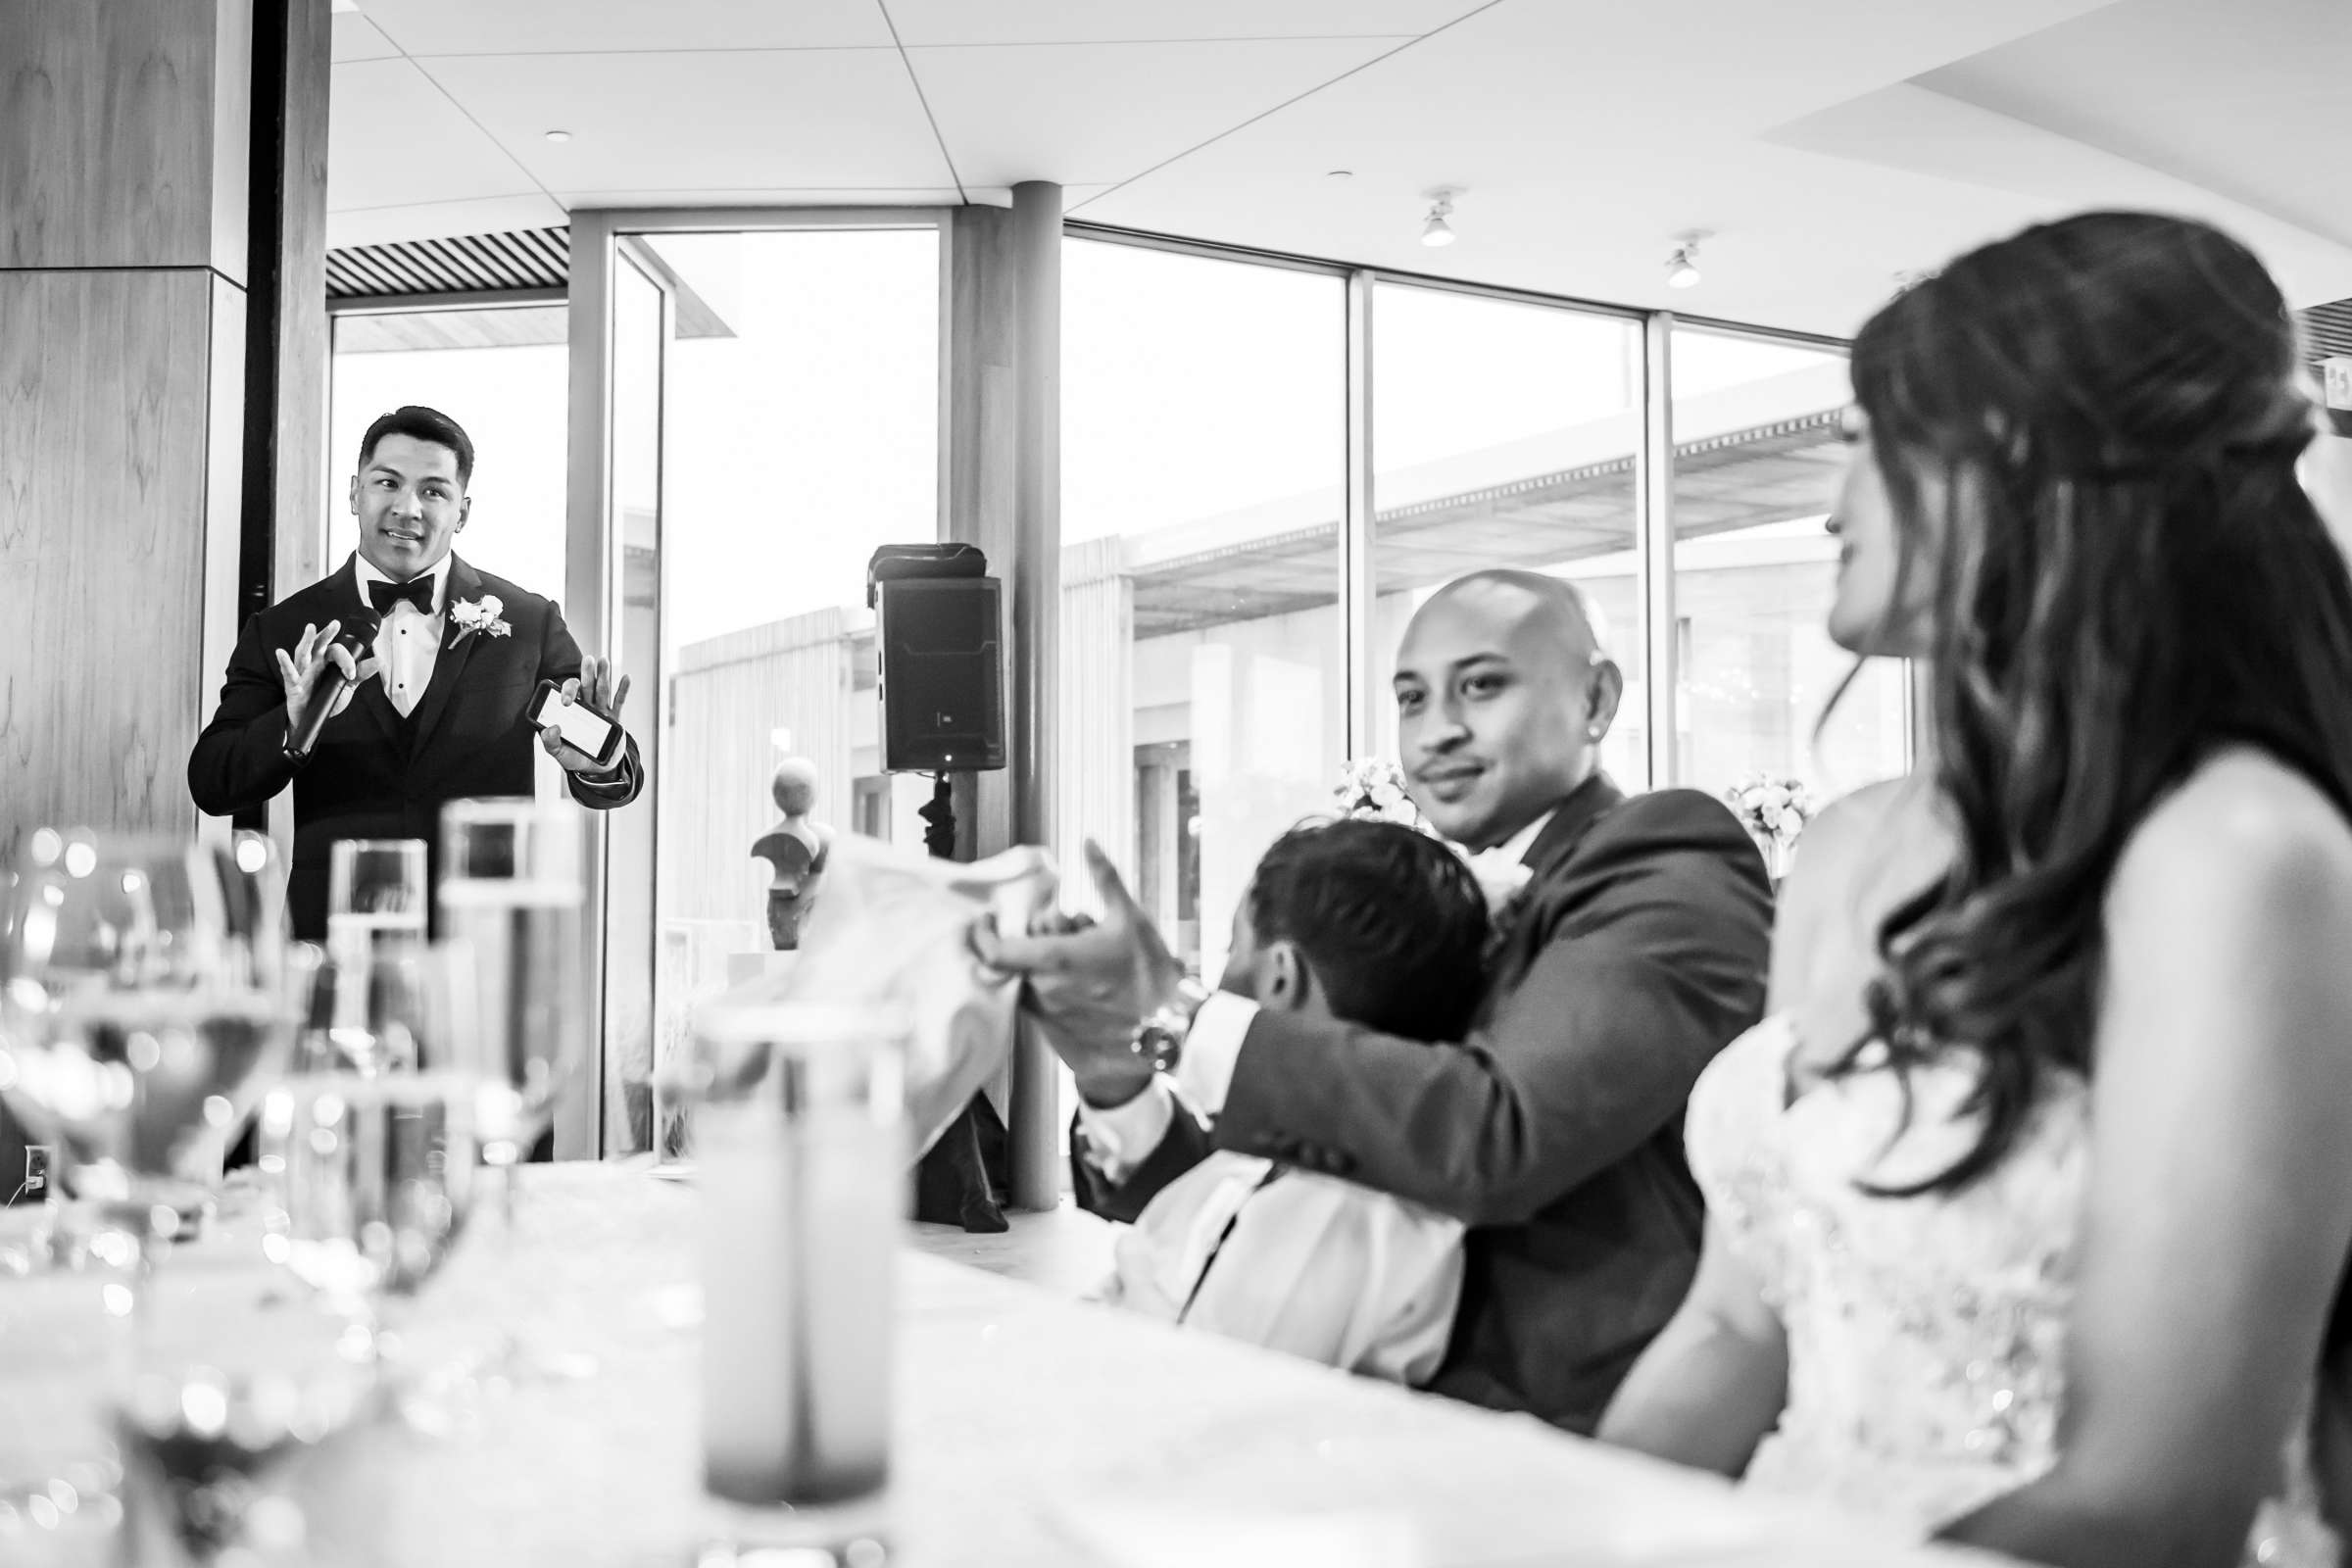 Scripps Seaside Forum Wedding coordinated by Lavish Weddings, Cindy and Justin Wedding Photo #381861 by True Photography